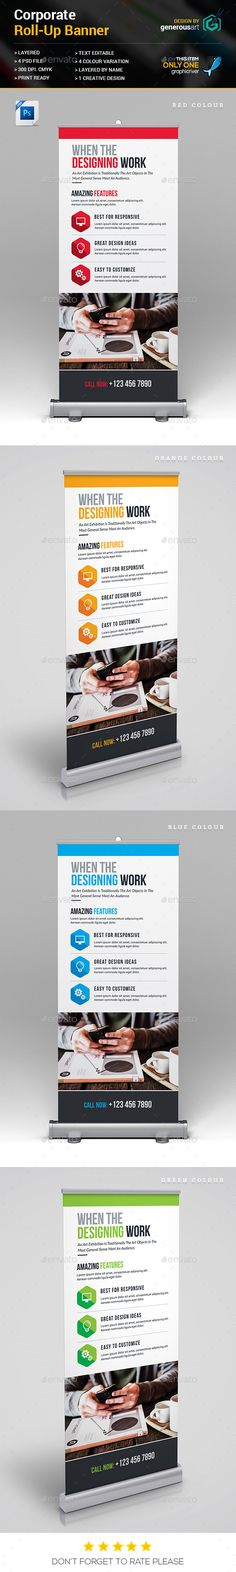 Fashion Roll-Up Banner Template PSD   Roll-Up Banner Templates ...